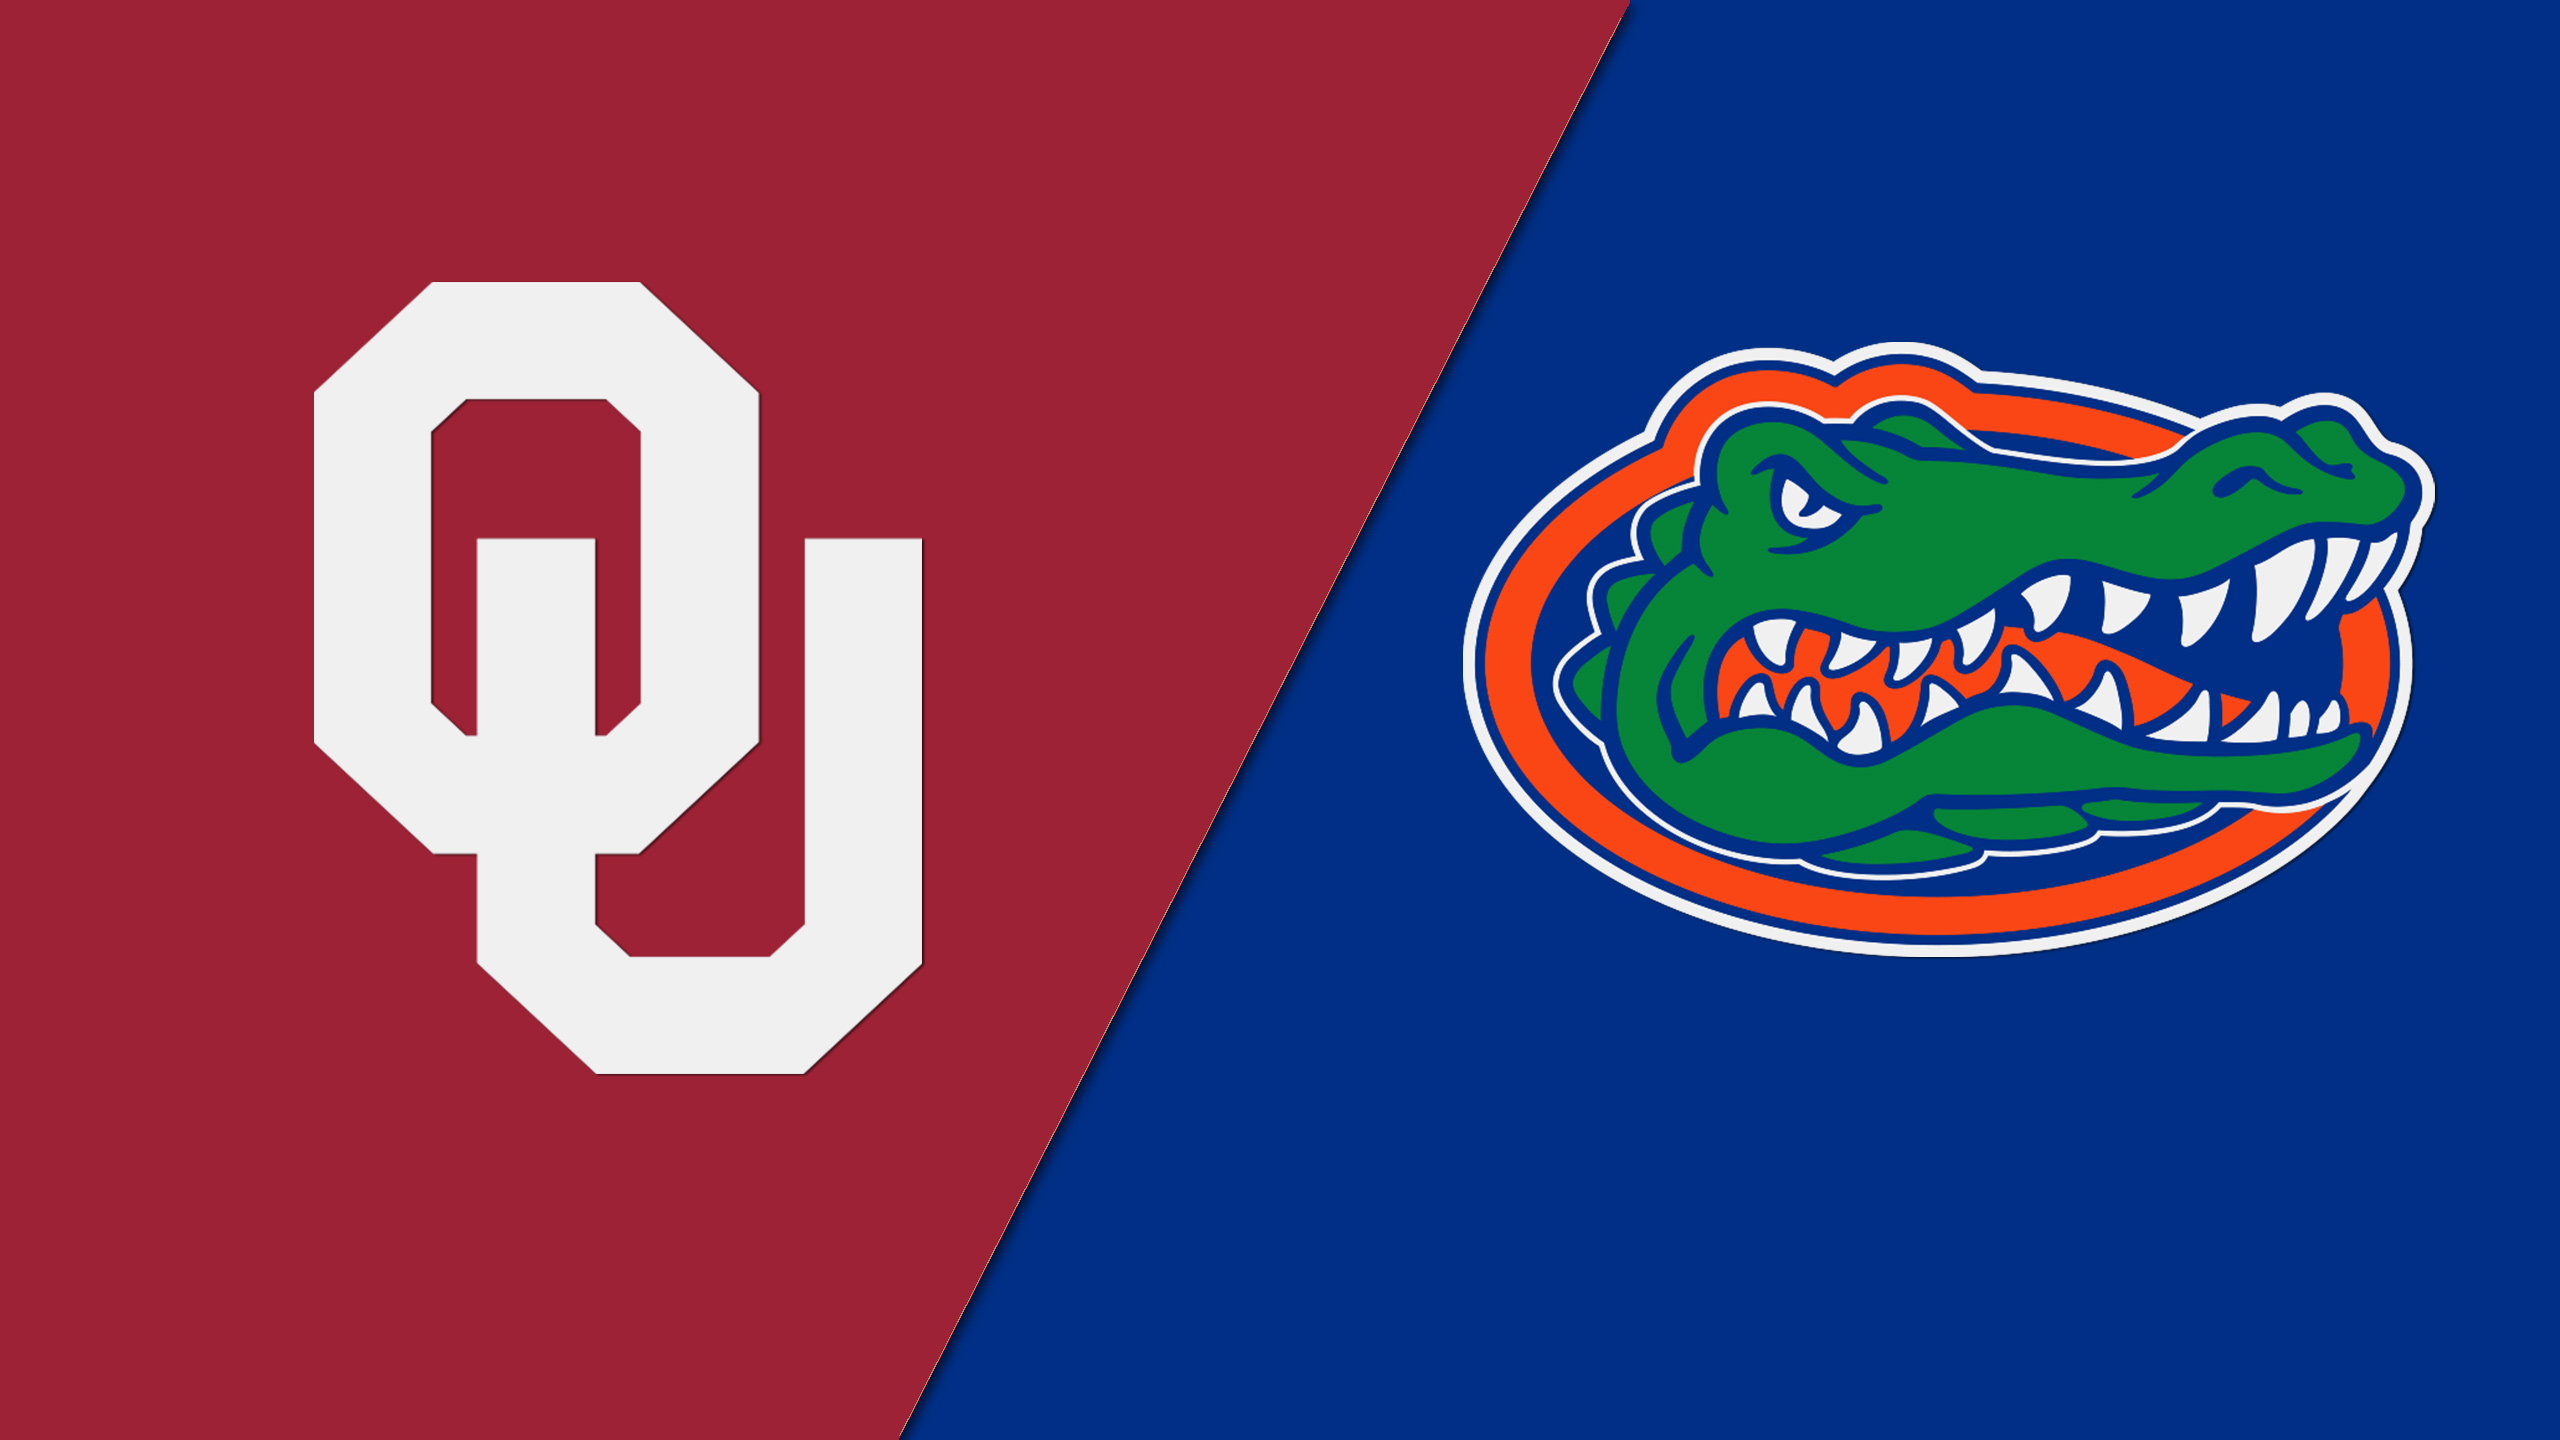 Oklahoma vs. Florida (Quarterfinal #1) (Battle 4 Atlantis)